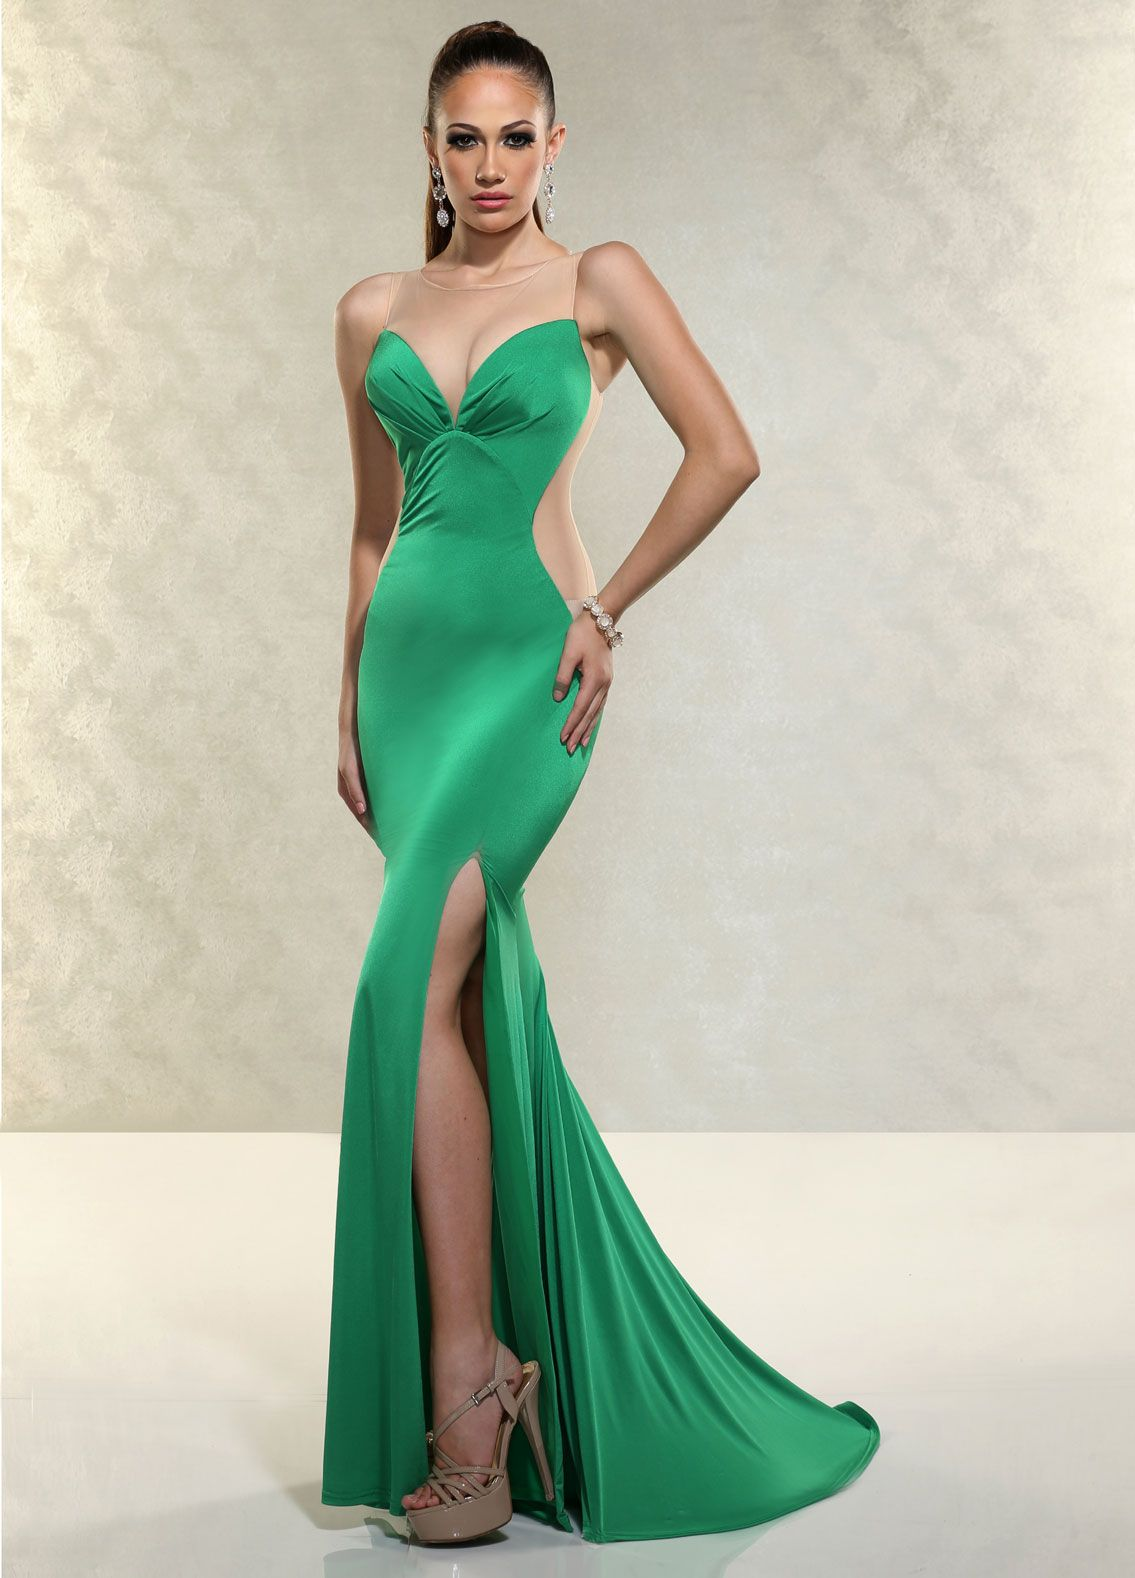 Pin By Pat Bittinger On Gown Board 4 Pinterest Prom Dresses